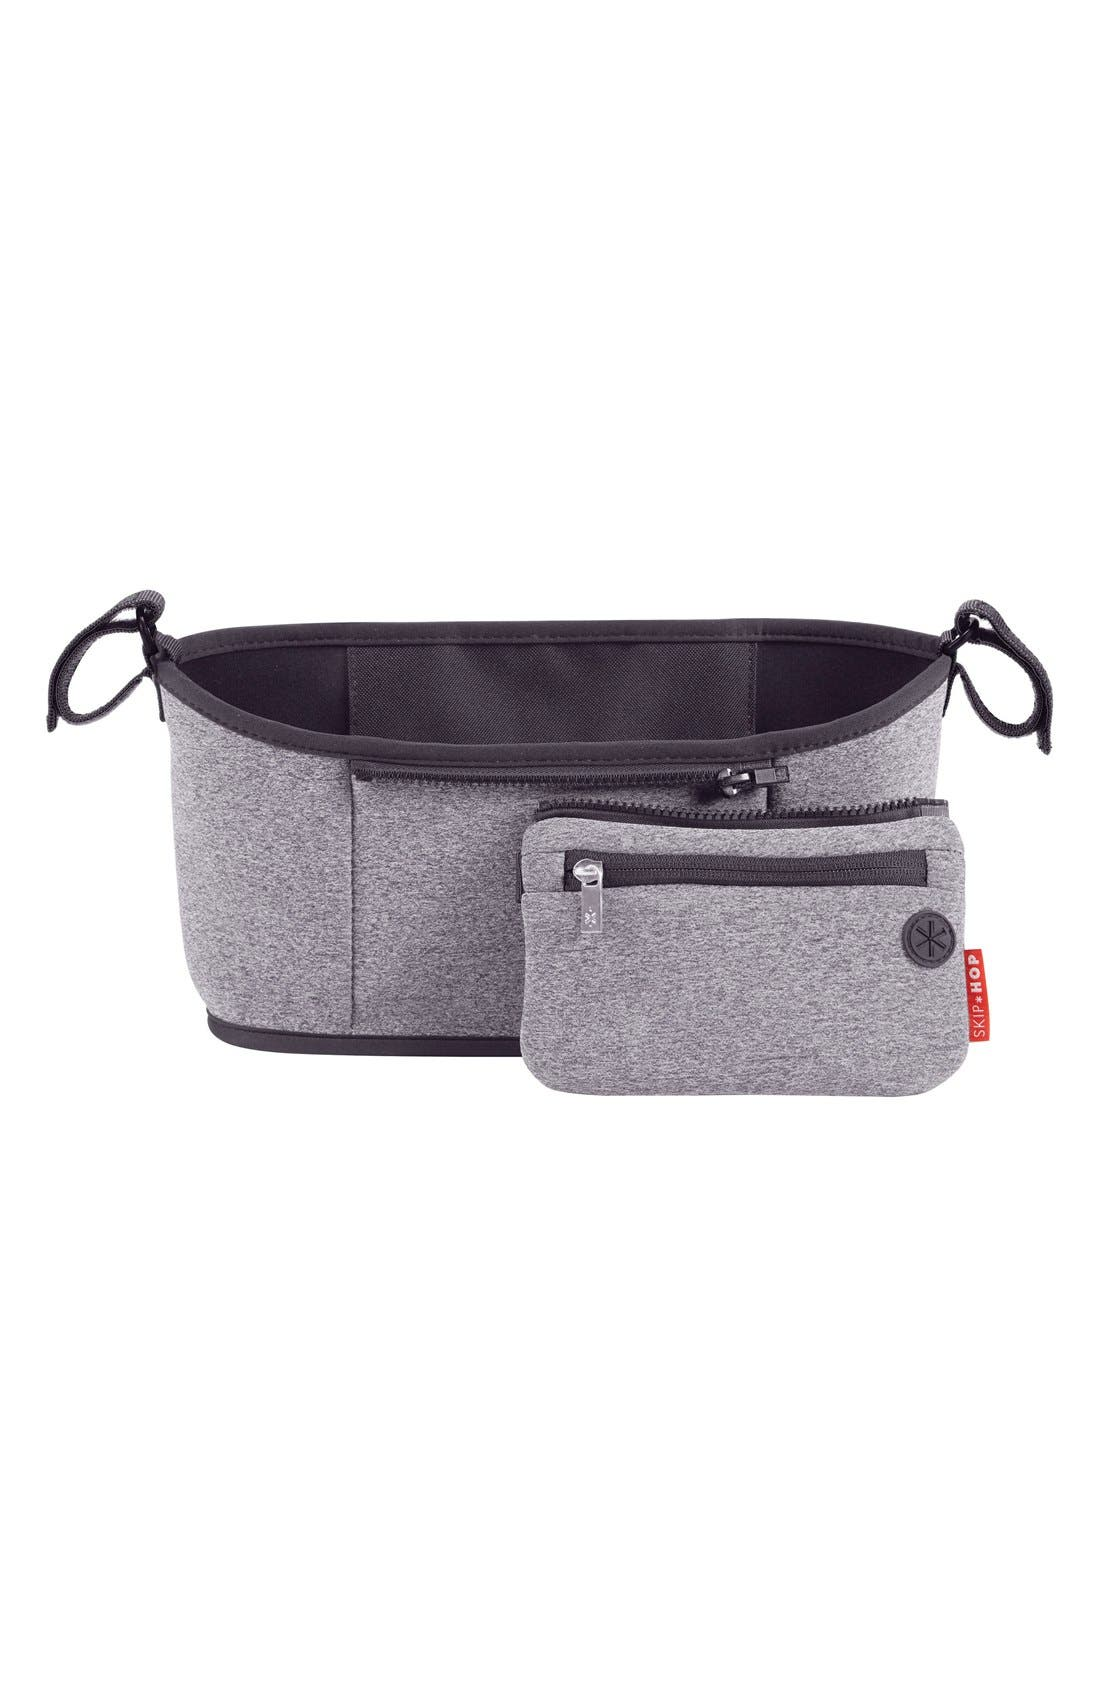 'Grab & Go' Stroller Organizer,                         Main,                         color, Heather Grey